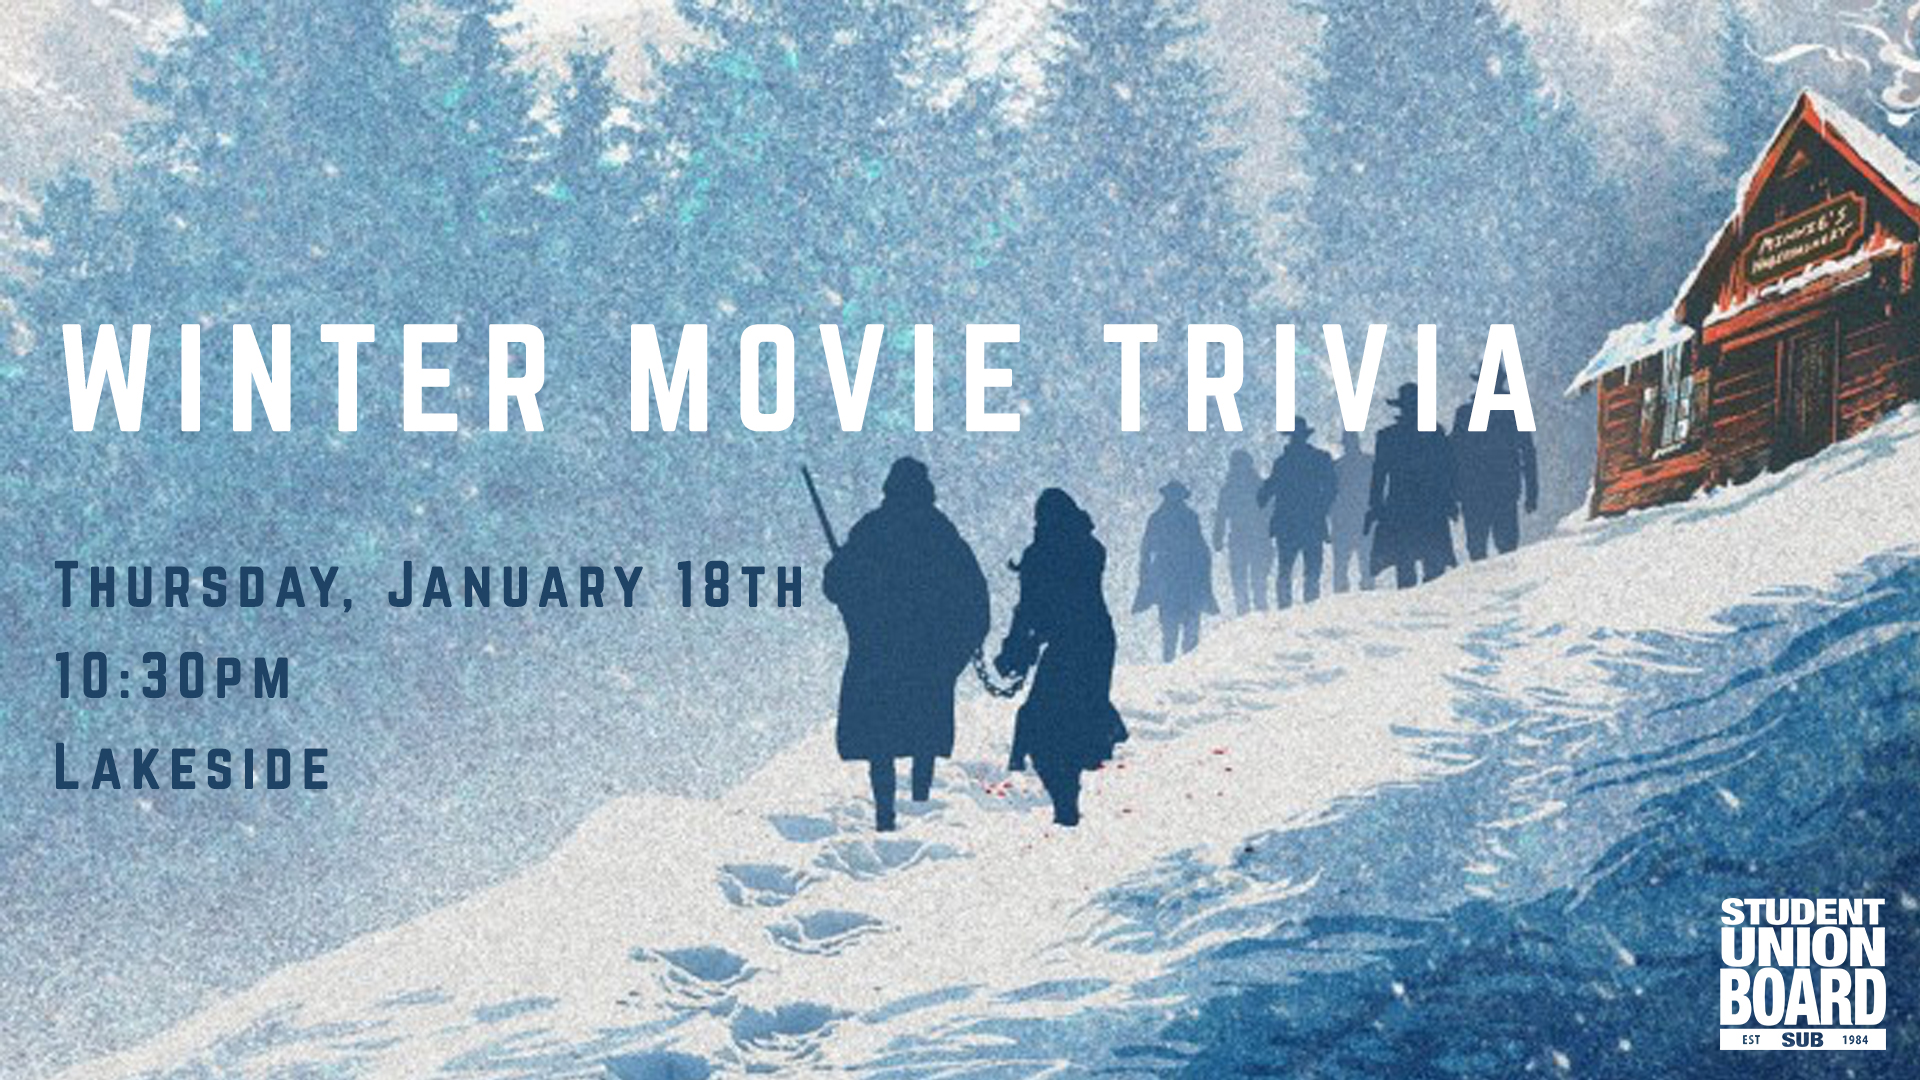 Our first monthly trivia of the year is Winter Movie themed! Brush up on your Winter movie watching and join us for a chance to win fun prizes!